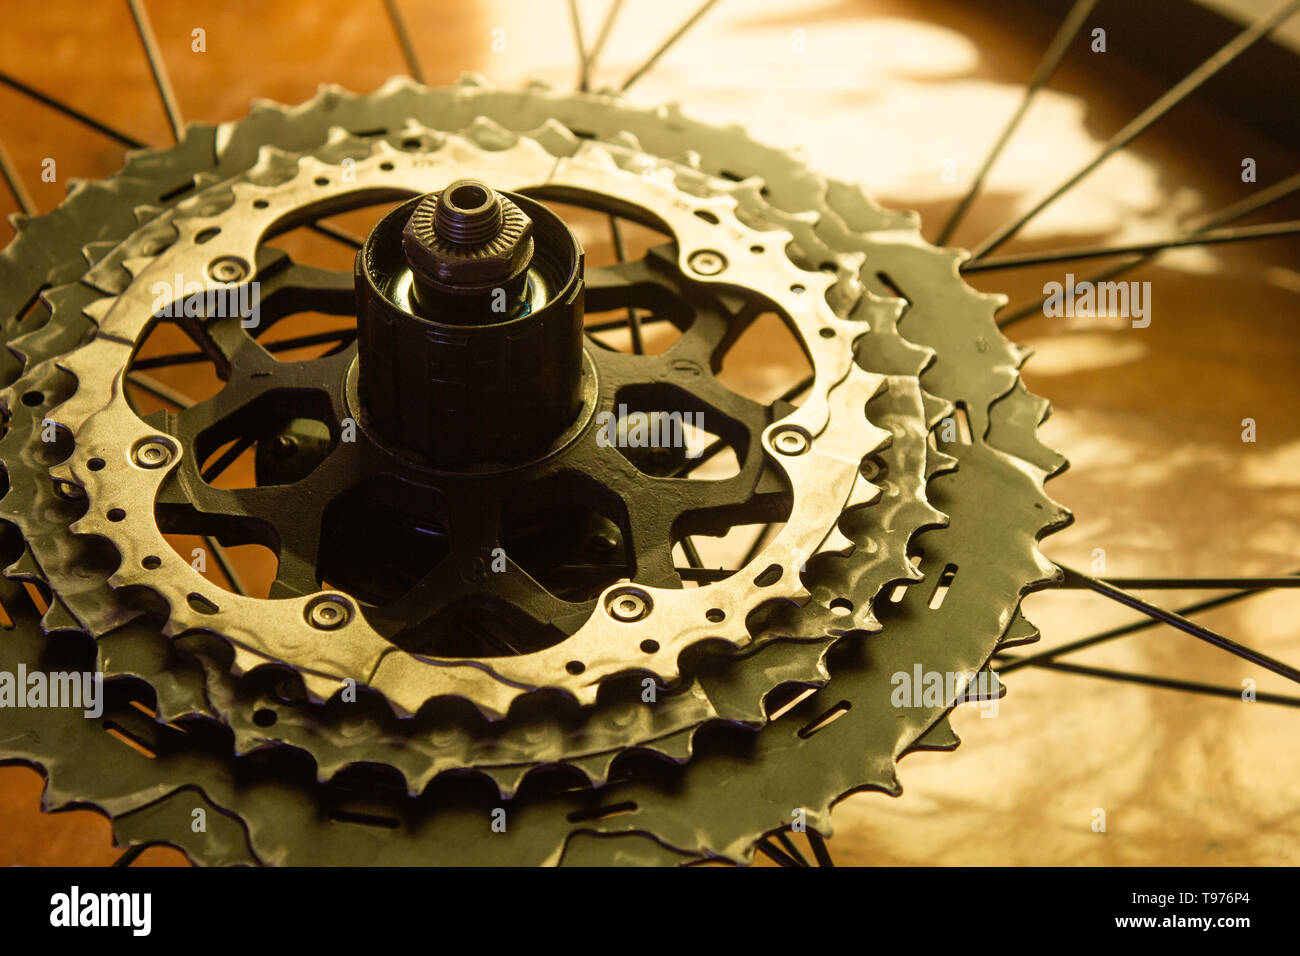 two largest sprockets of a cycling cassette mounted on the rear wheel - Stock Image